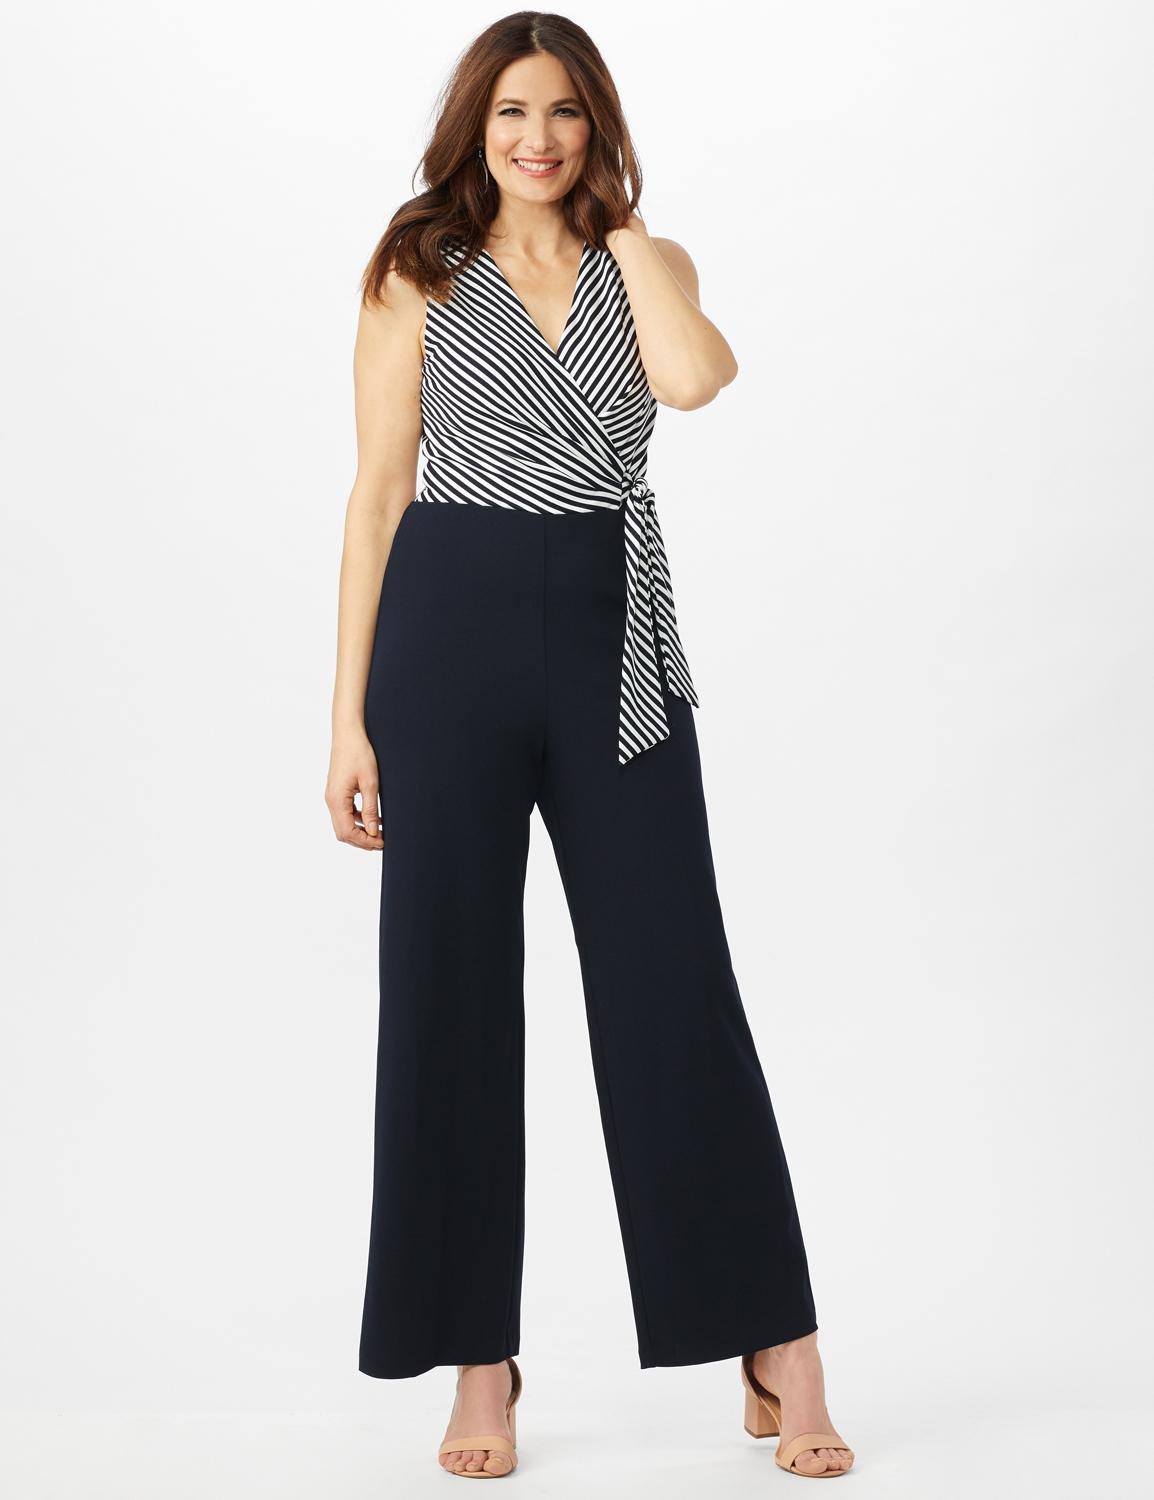 Faux Wrap Side Tie Jumpsuit -Navy/Ivory - Front